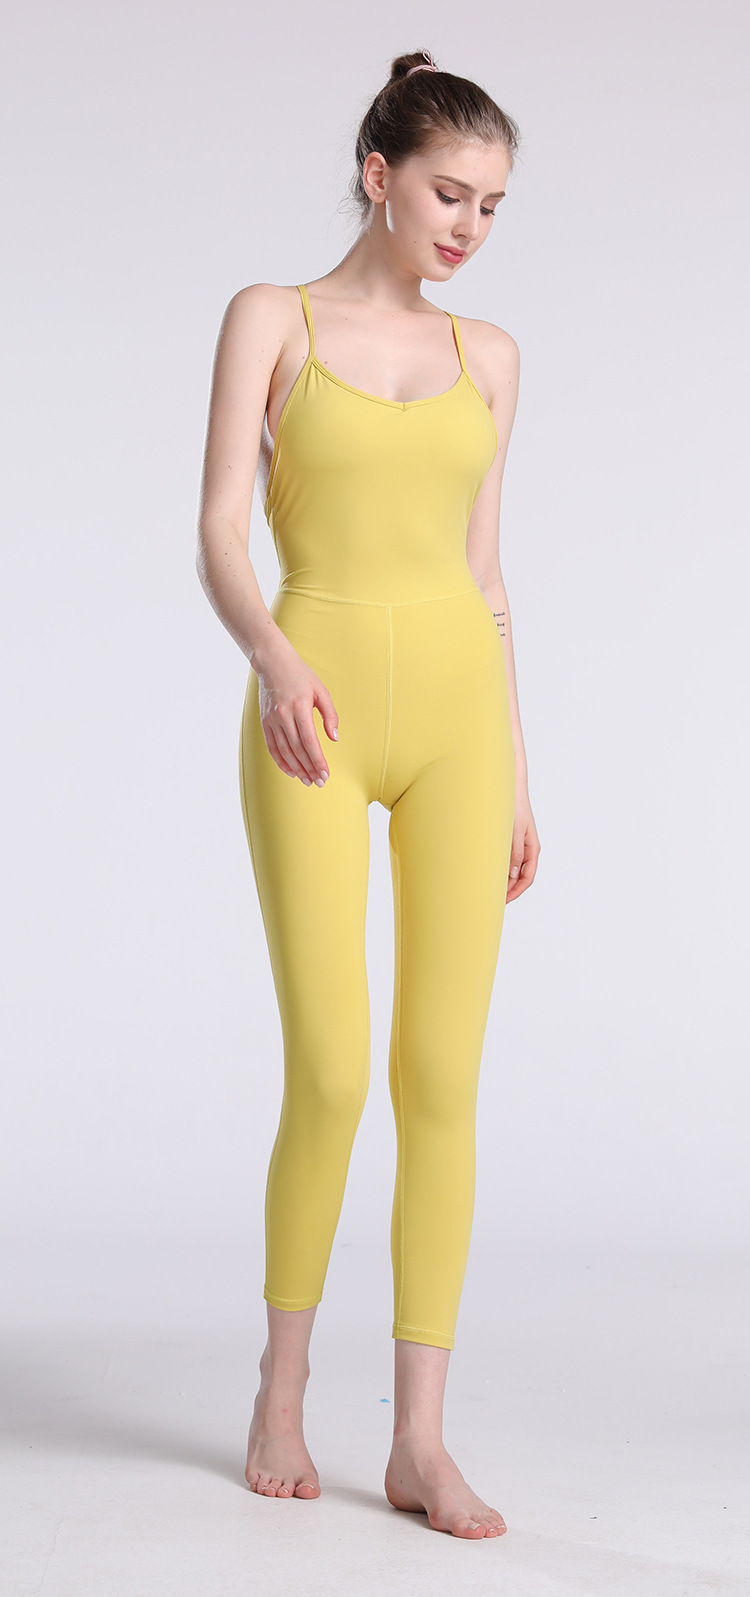 yoga jumpsuits (5)